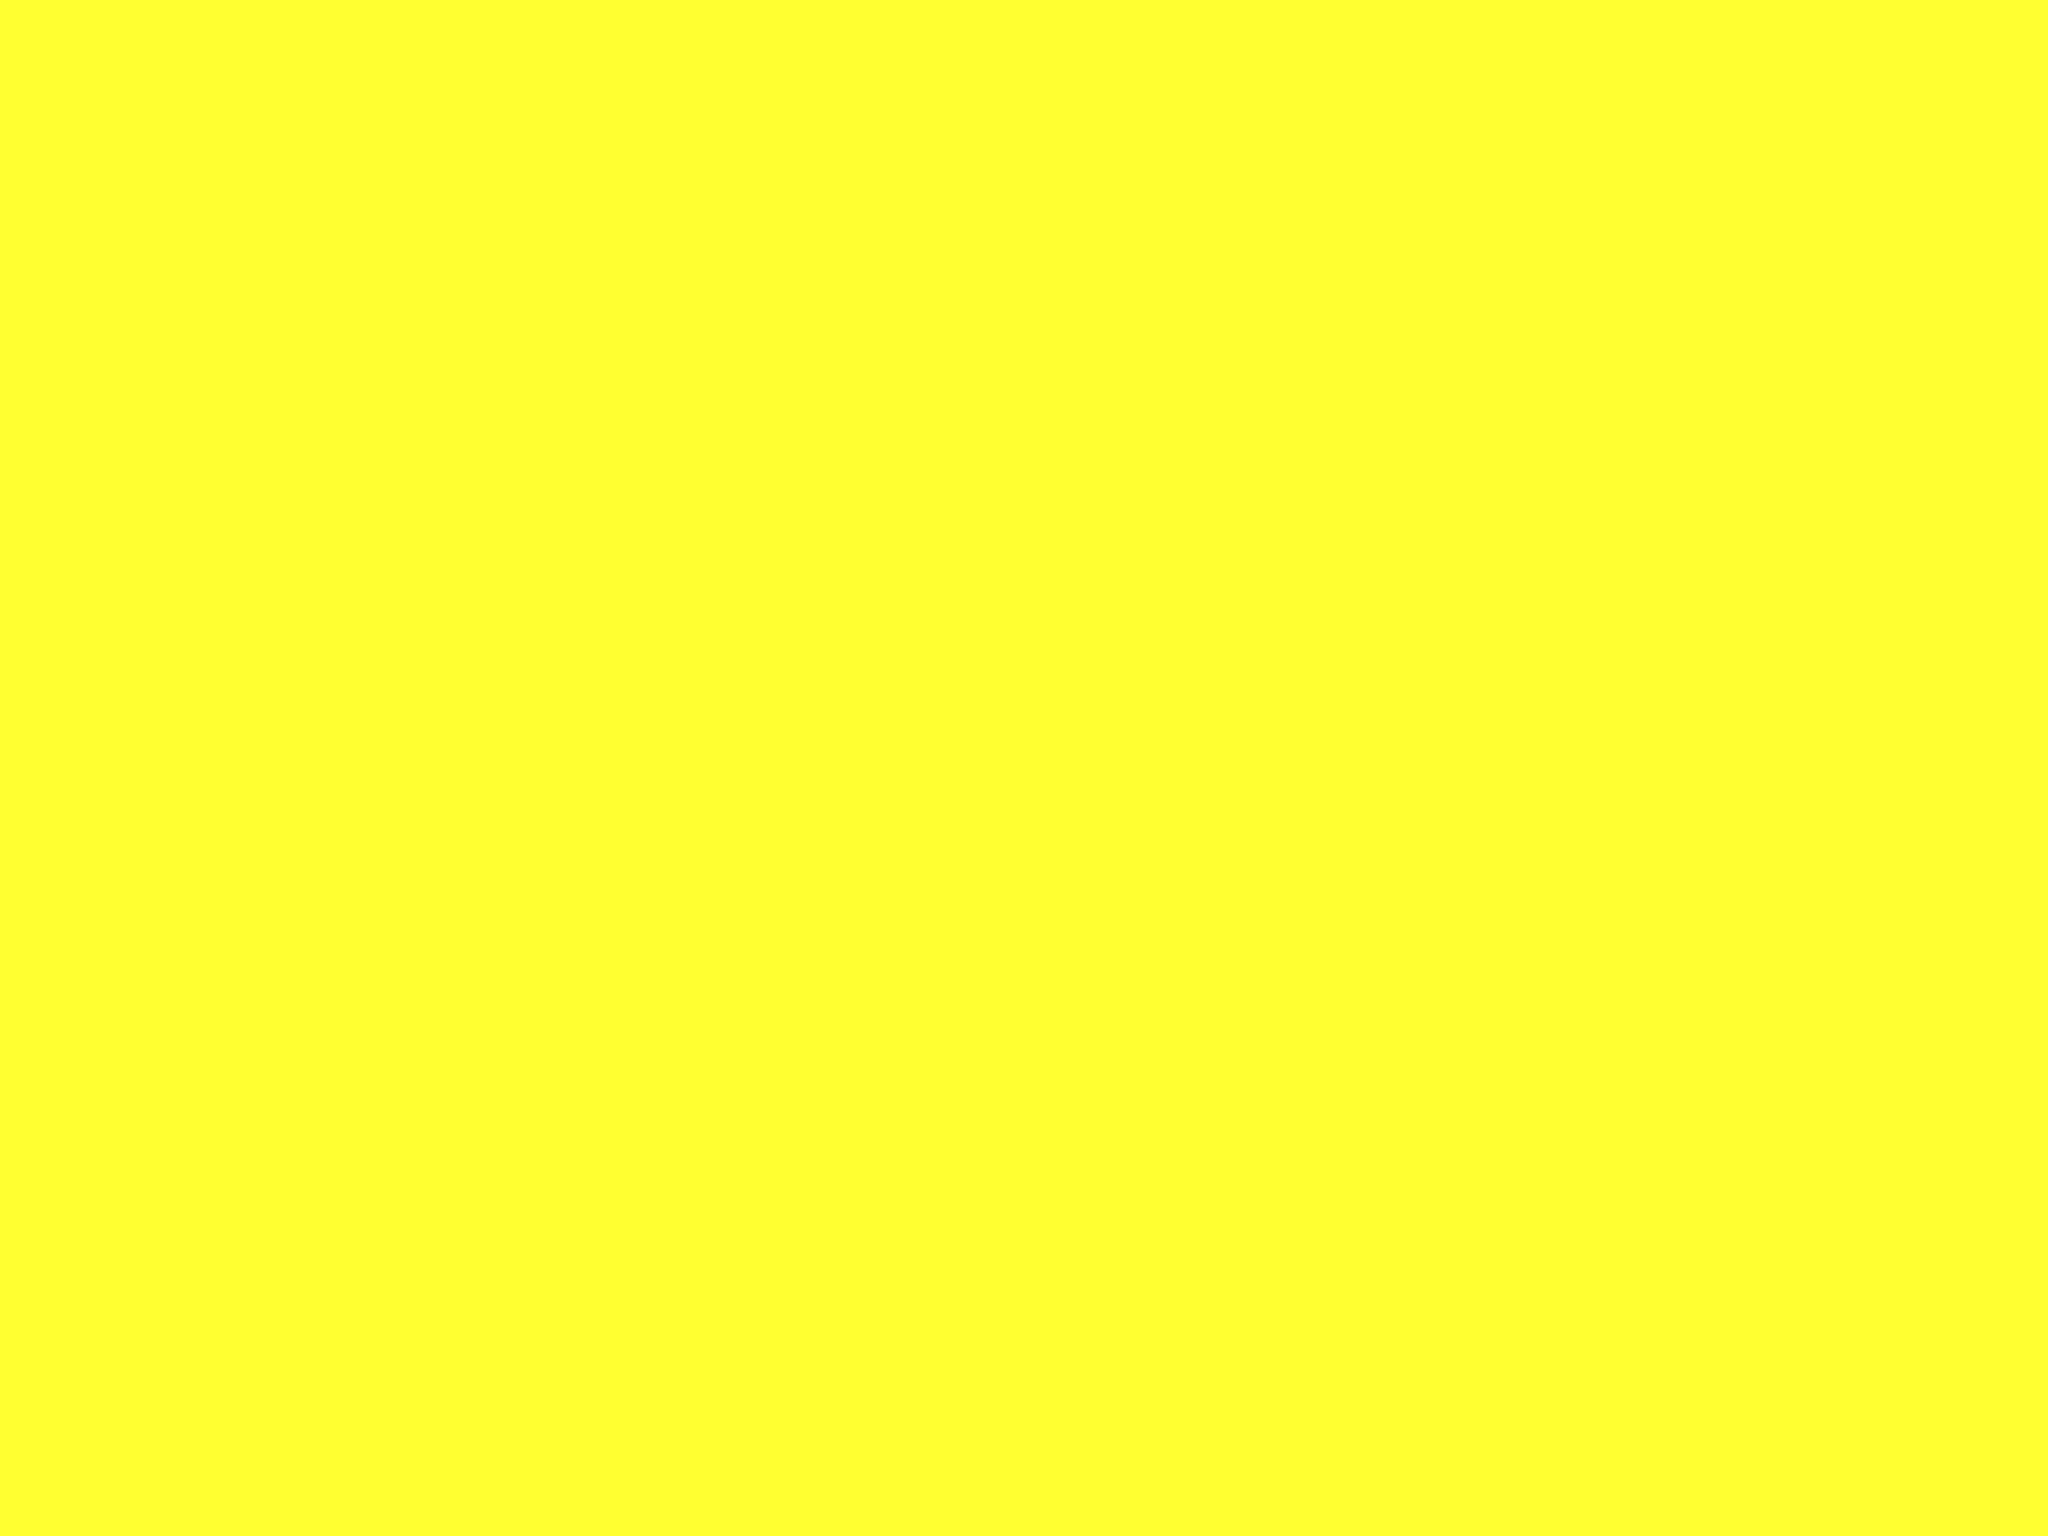 2048x1536 Daffodil Solid Color Background